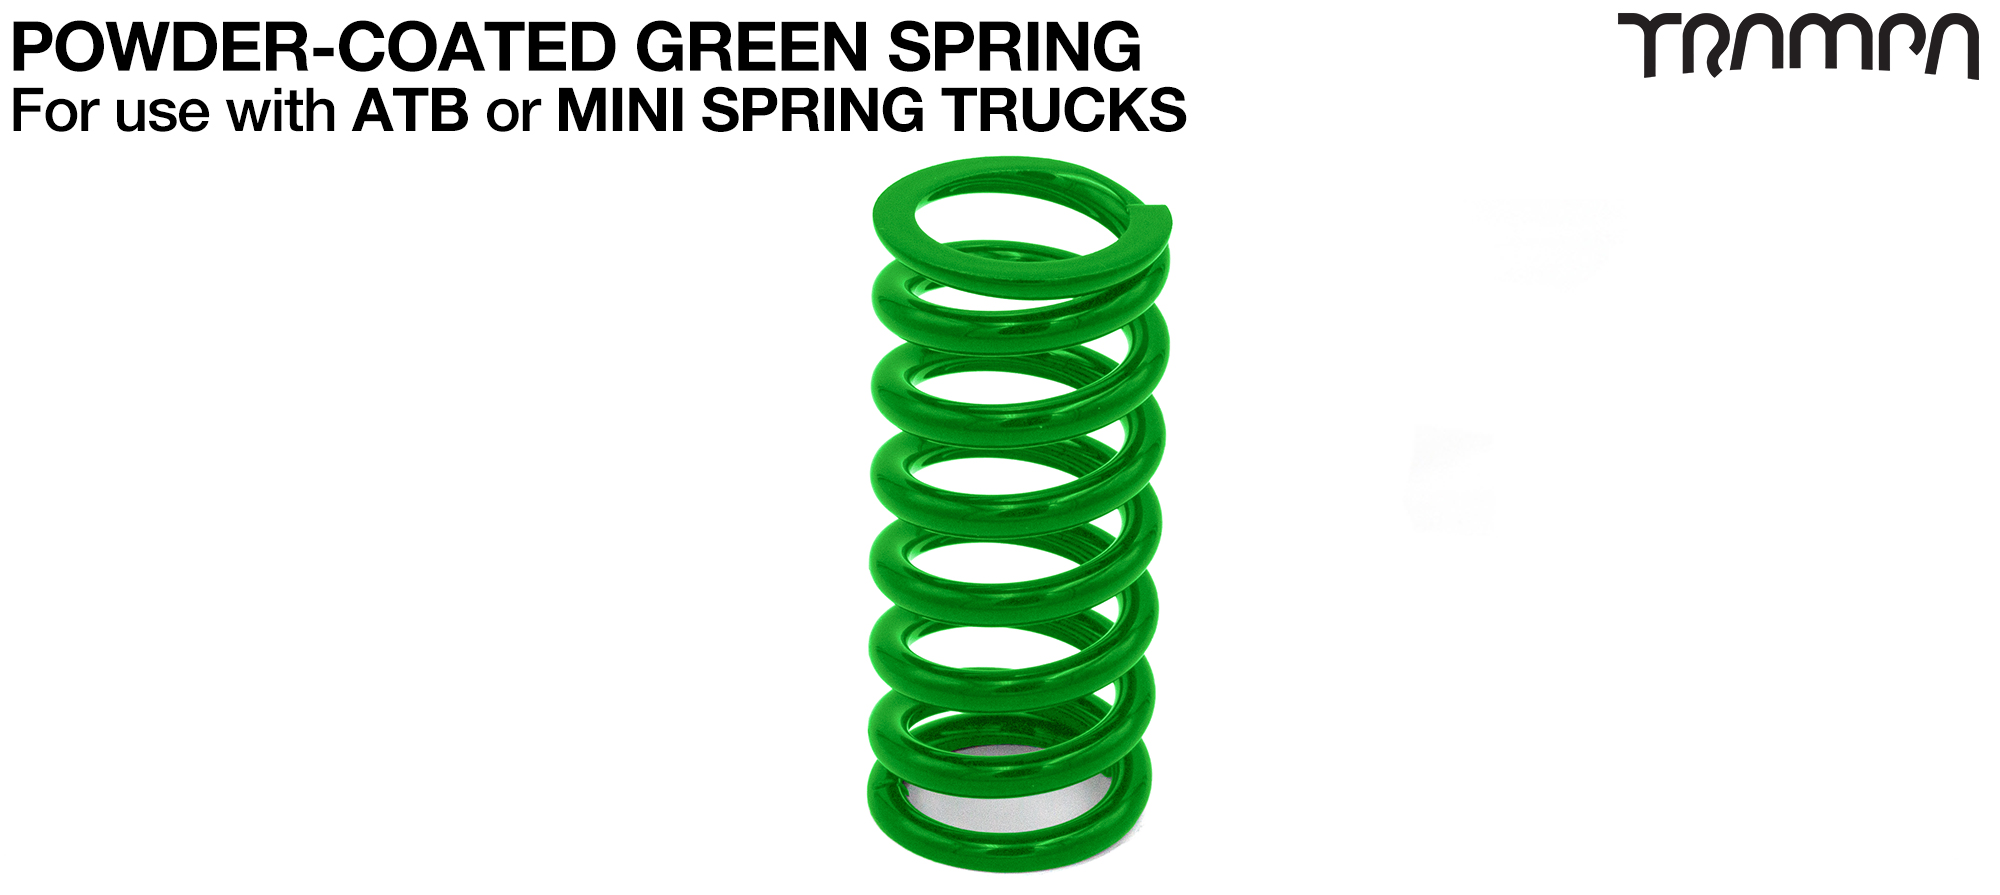 Steel Spring Powder Coated - GREEN